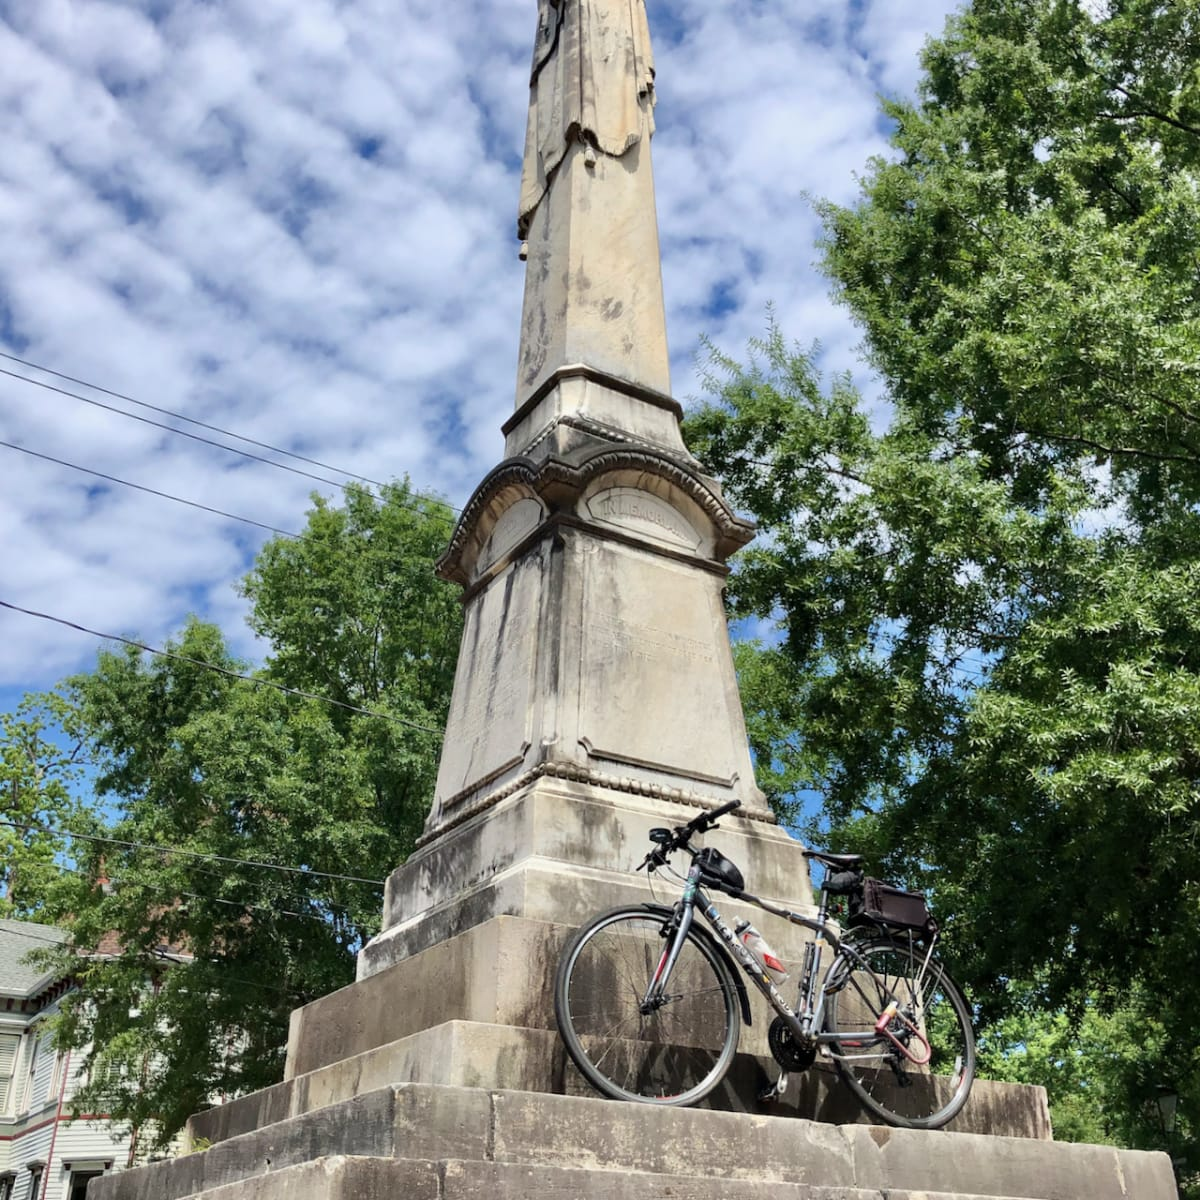 A photo of my bicycle in front of a monument.